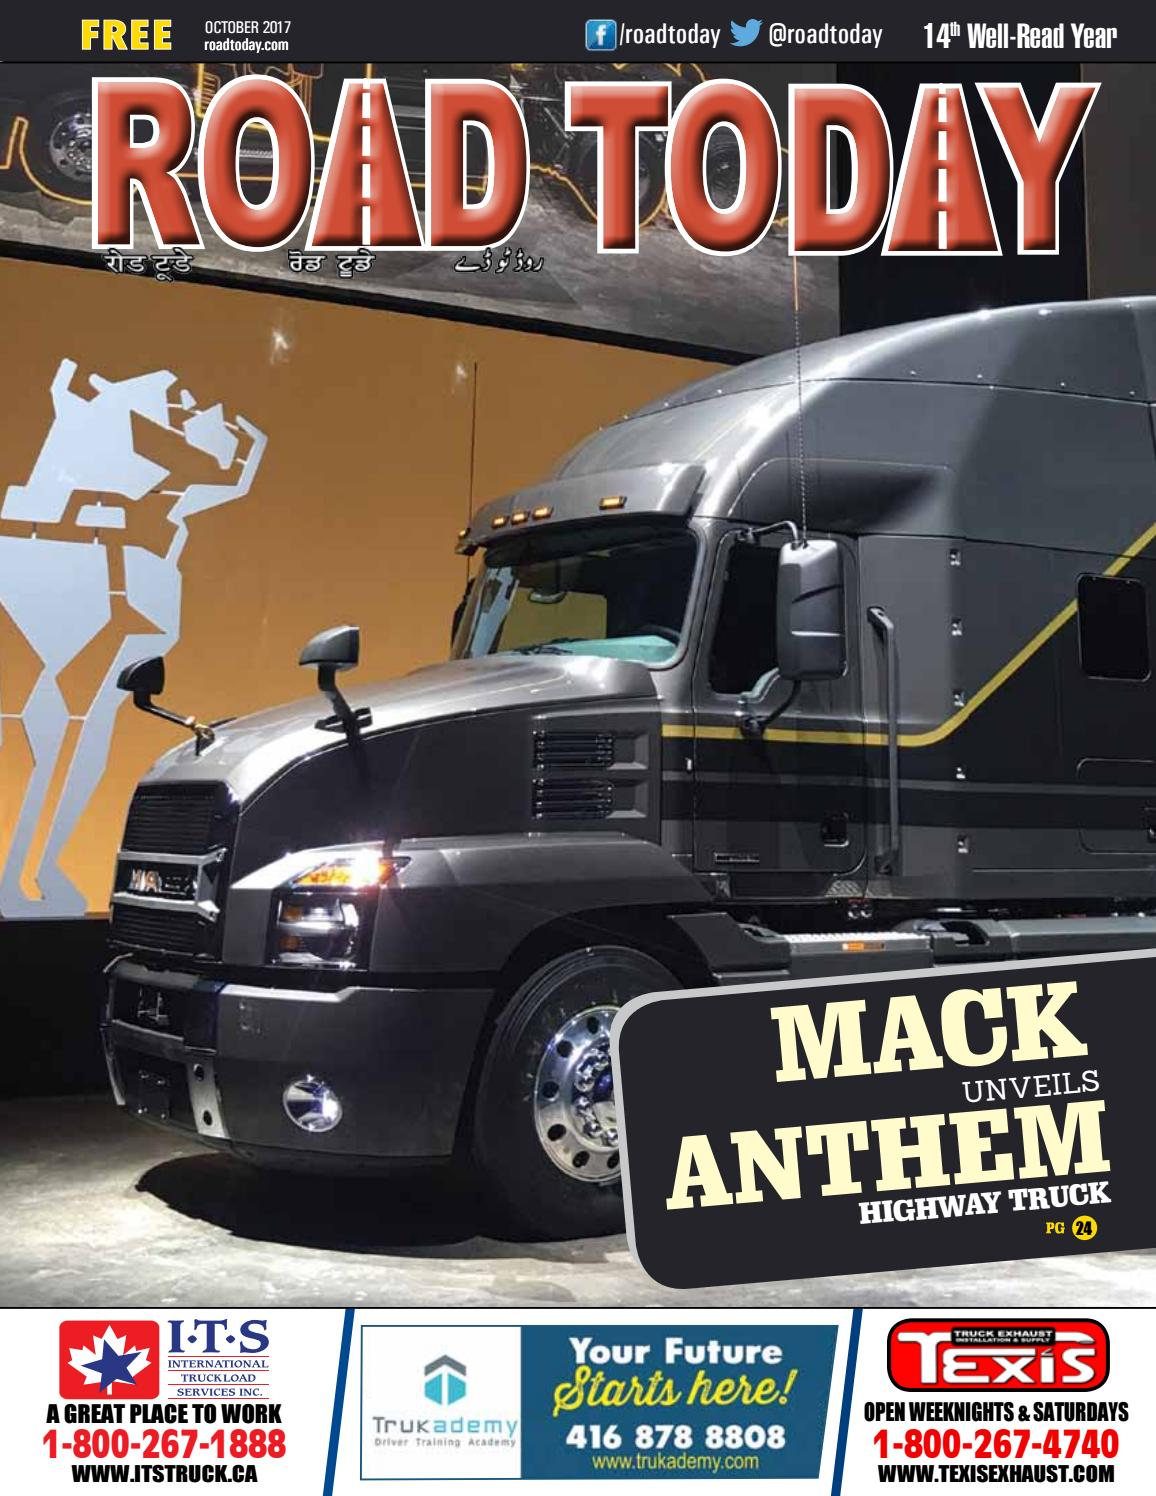 Road Today October 2017 by Road Today - issuu